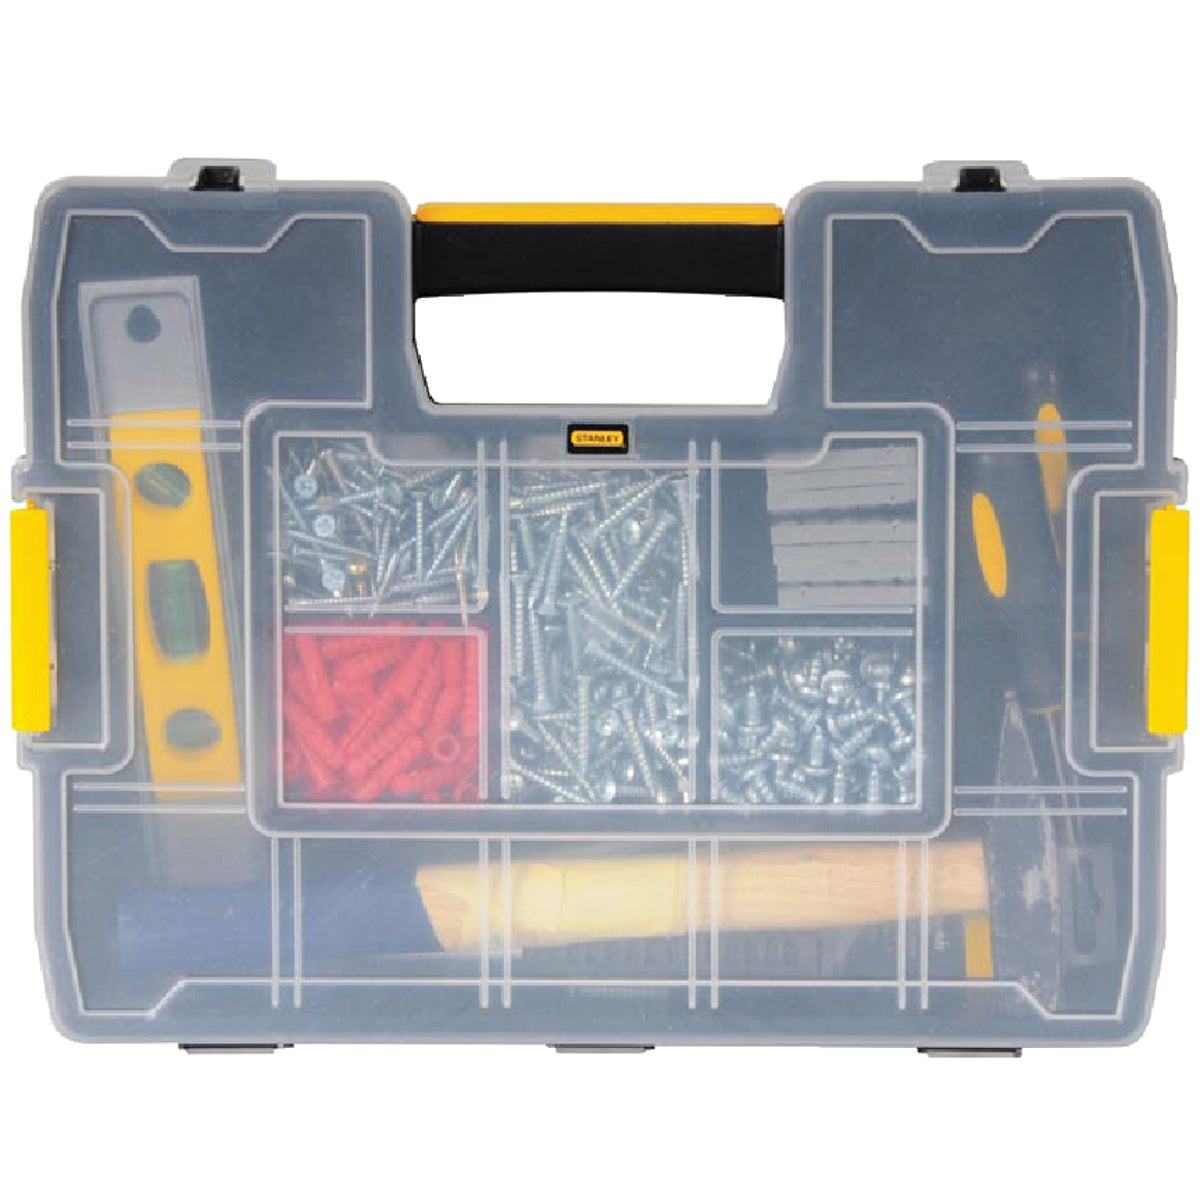 SORTMASTER JR ORGANIZER - STST14022 by Stanley Tools